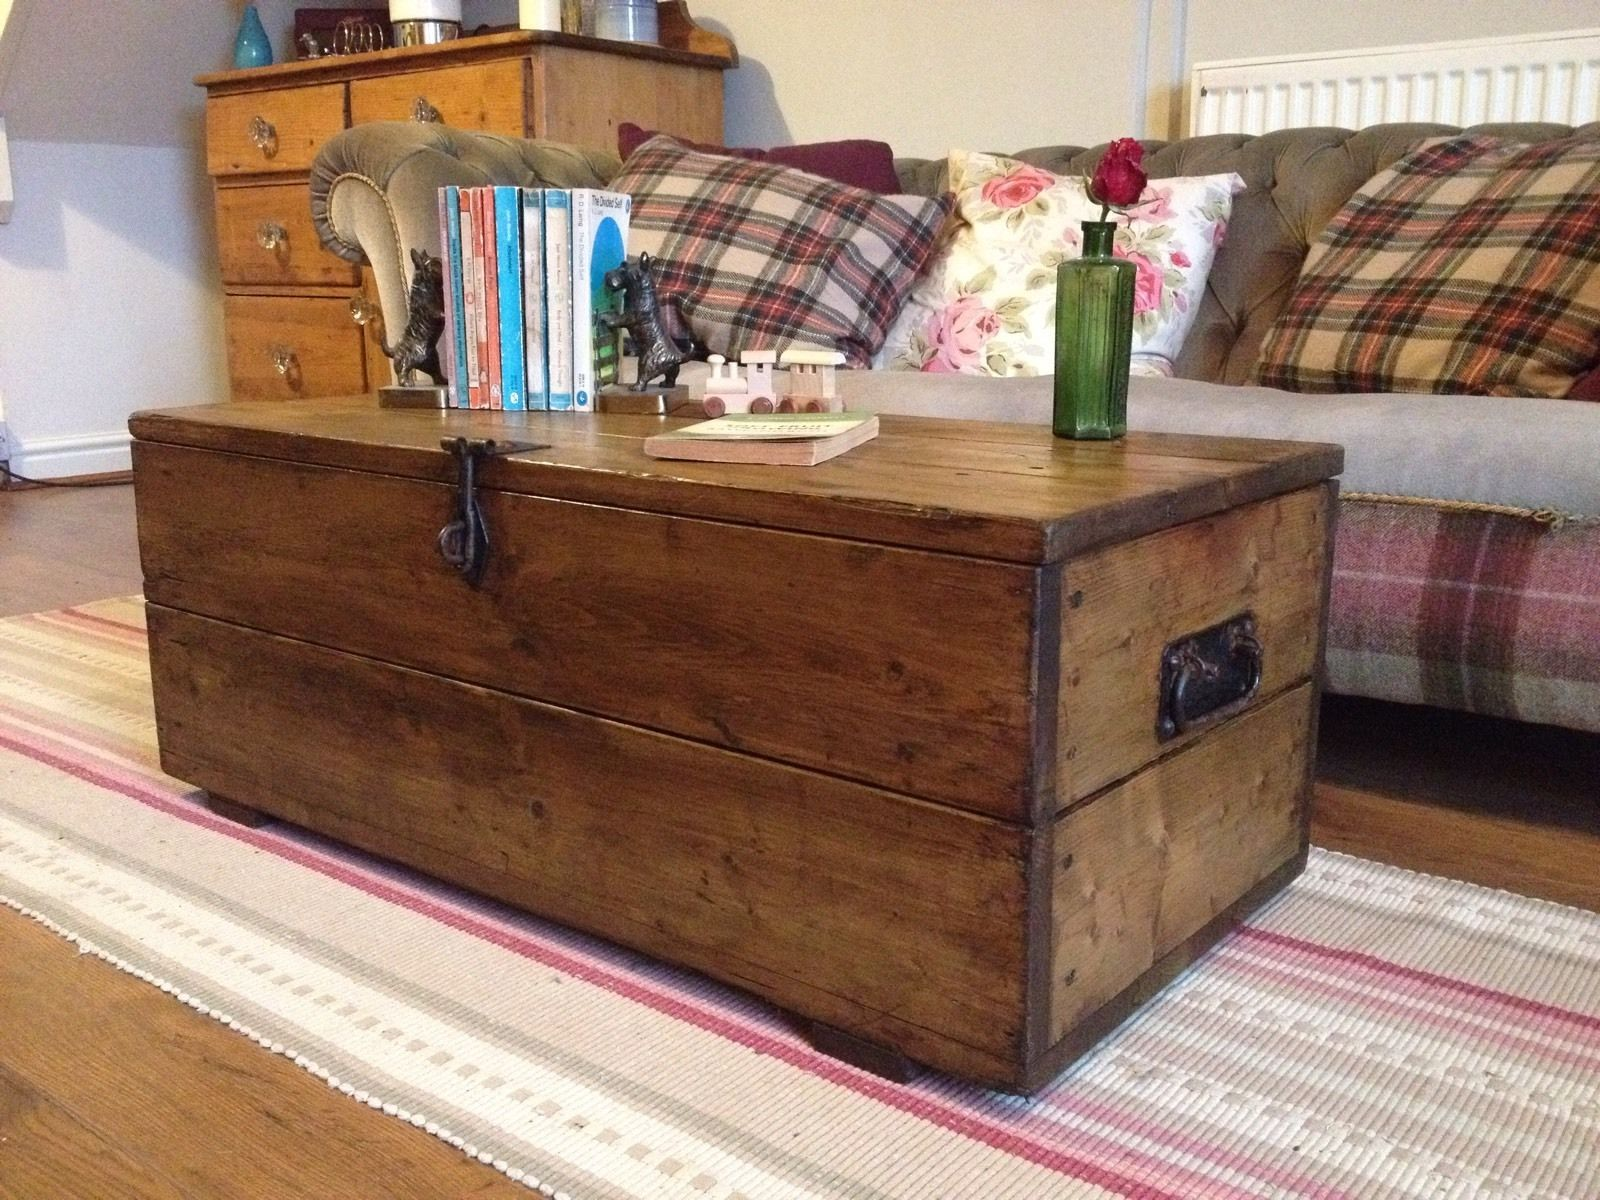 Details about Old Rustic PINE BOX, Vintage Wooden CHEST ...